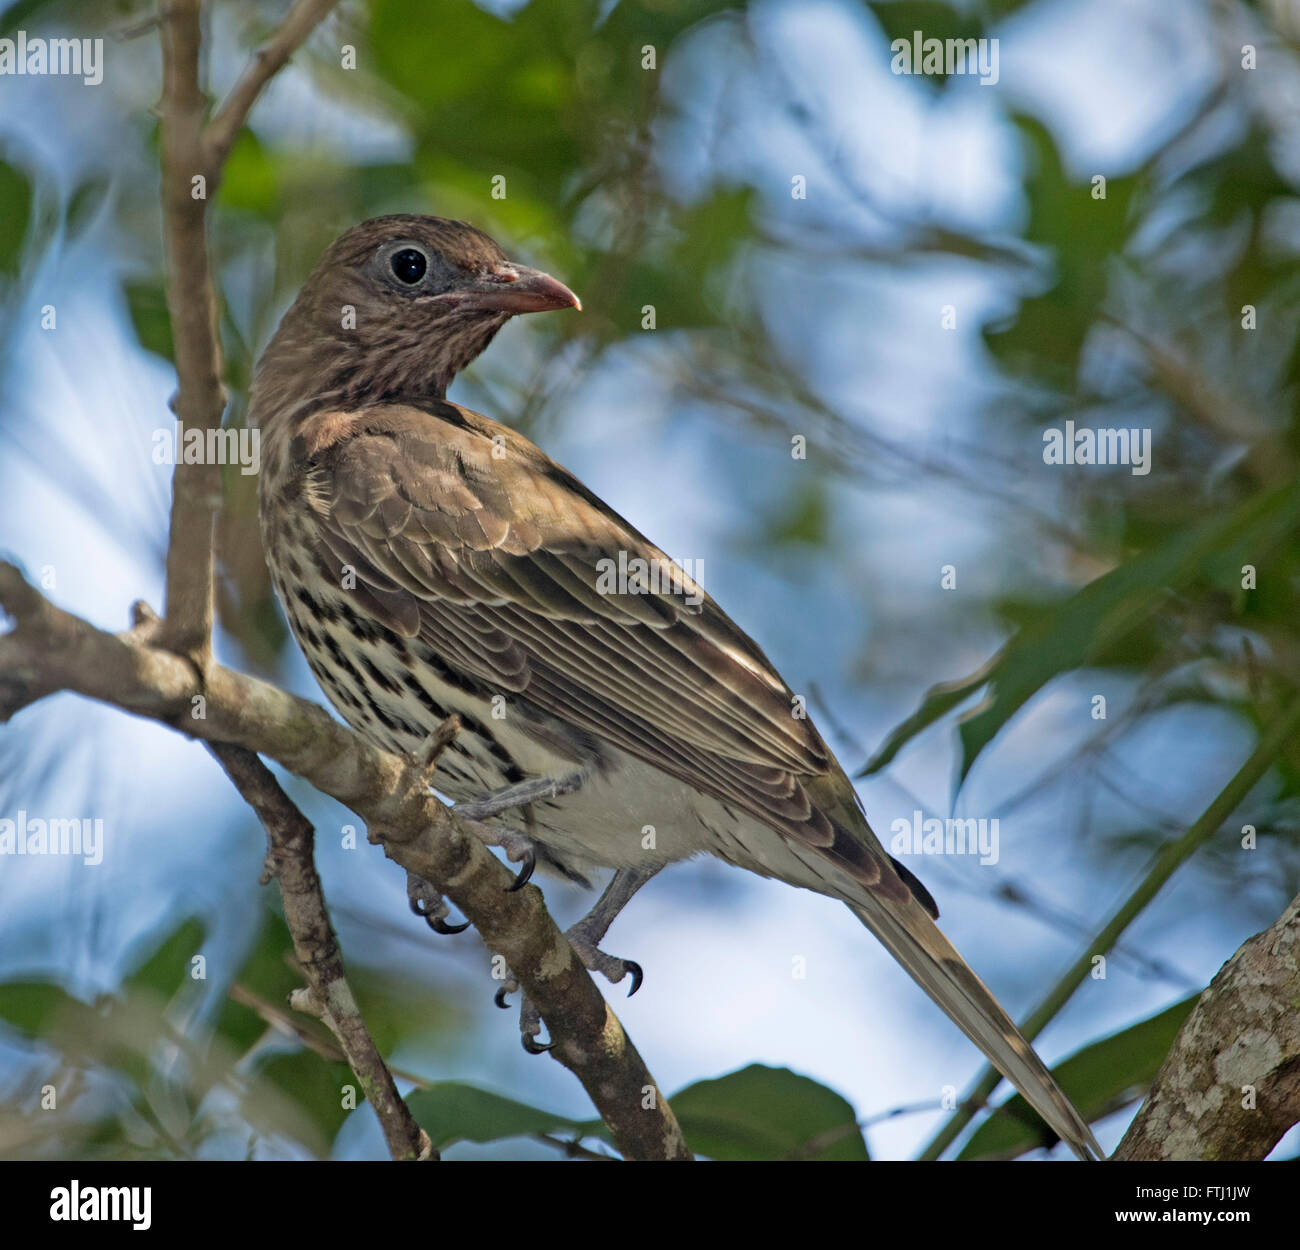 Female green figbird Sphecotheres viridis on tree branch with green foliage & against blue sky in Australian garden Stock Photo